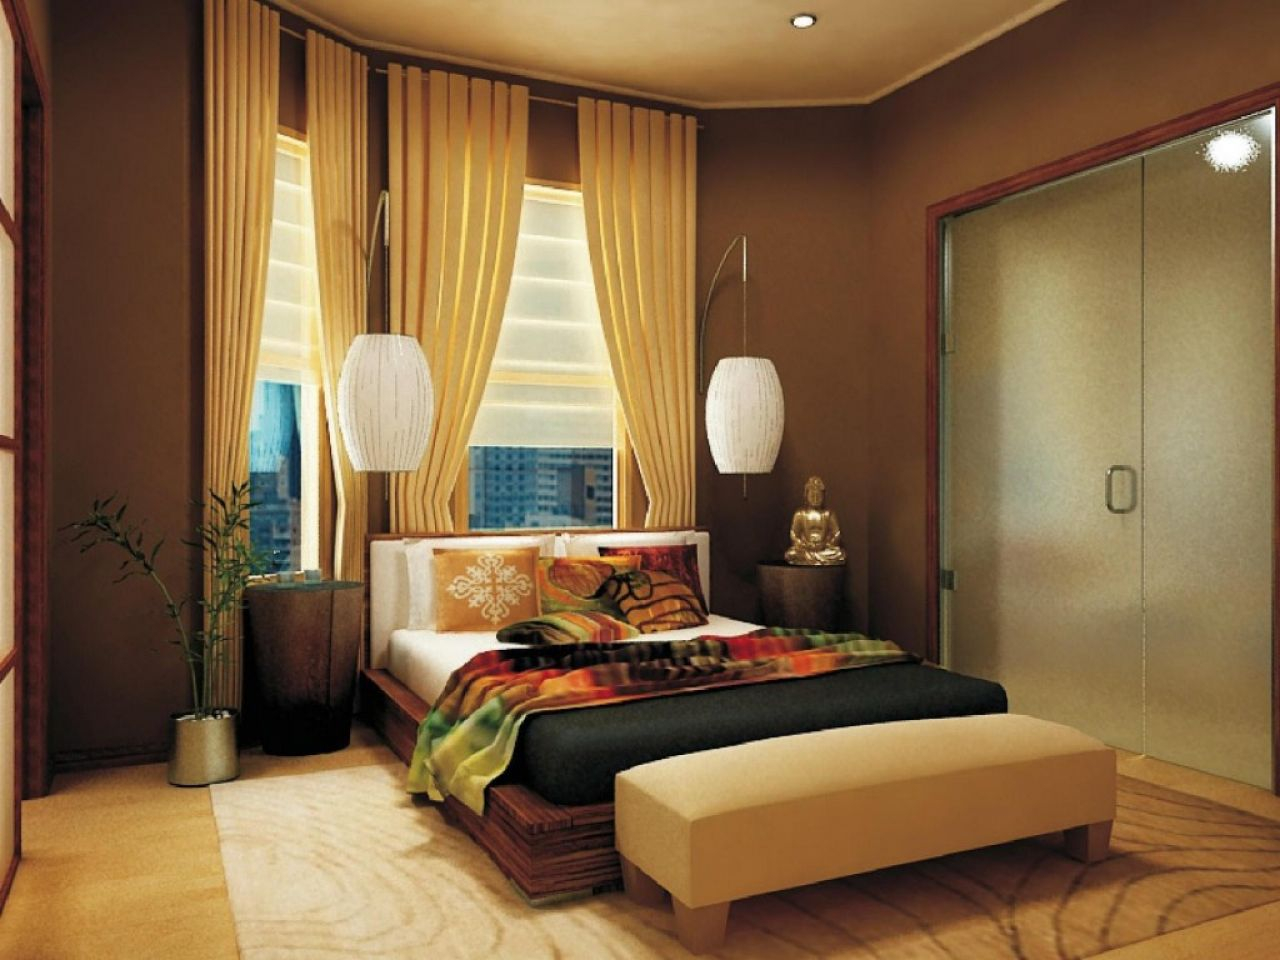 Fabulous Feng Shui Bedroom Ideas pertaining to Elegant Bedroom Feng Shui